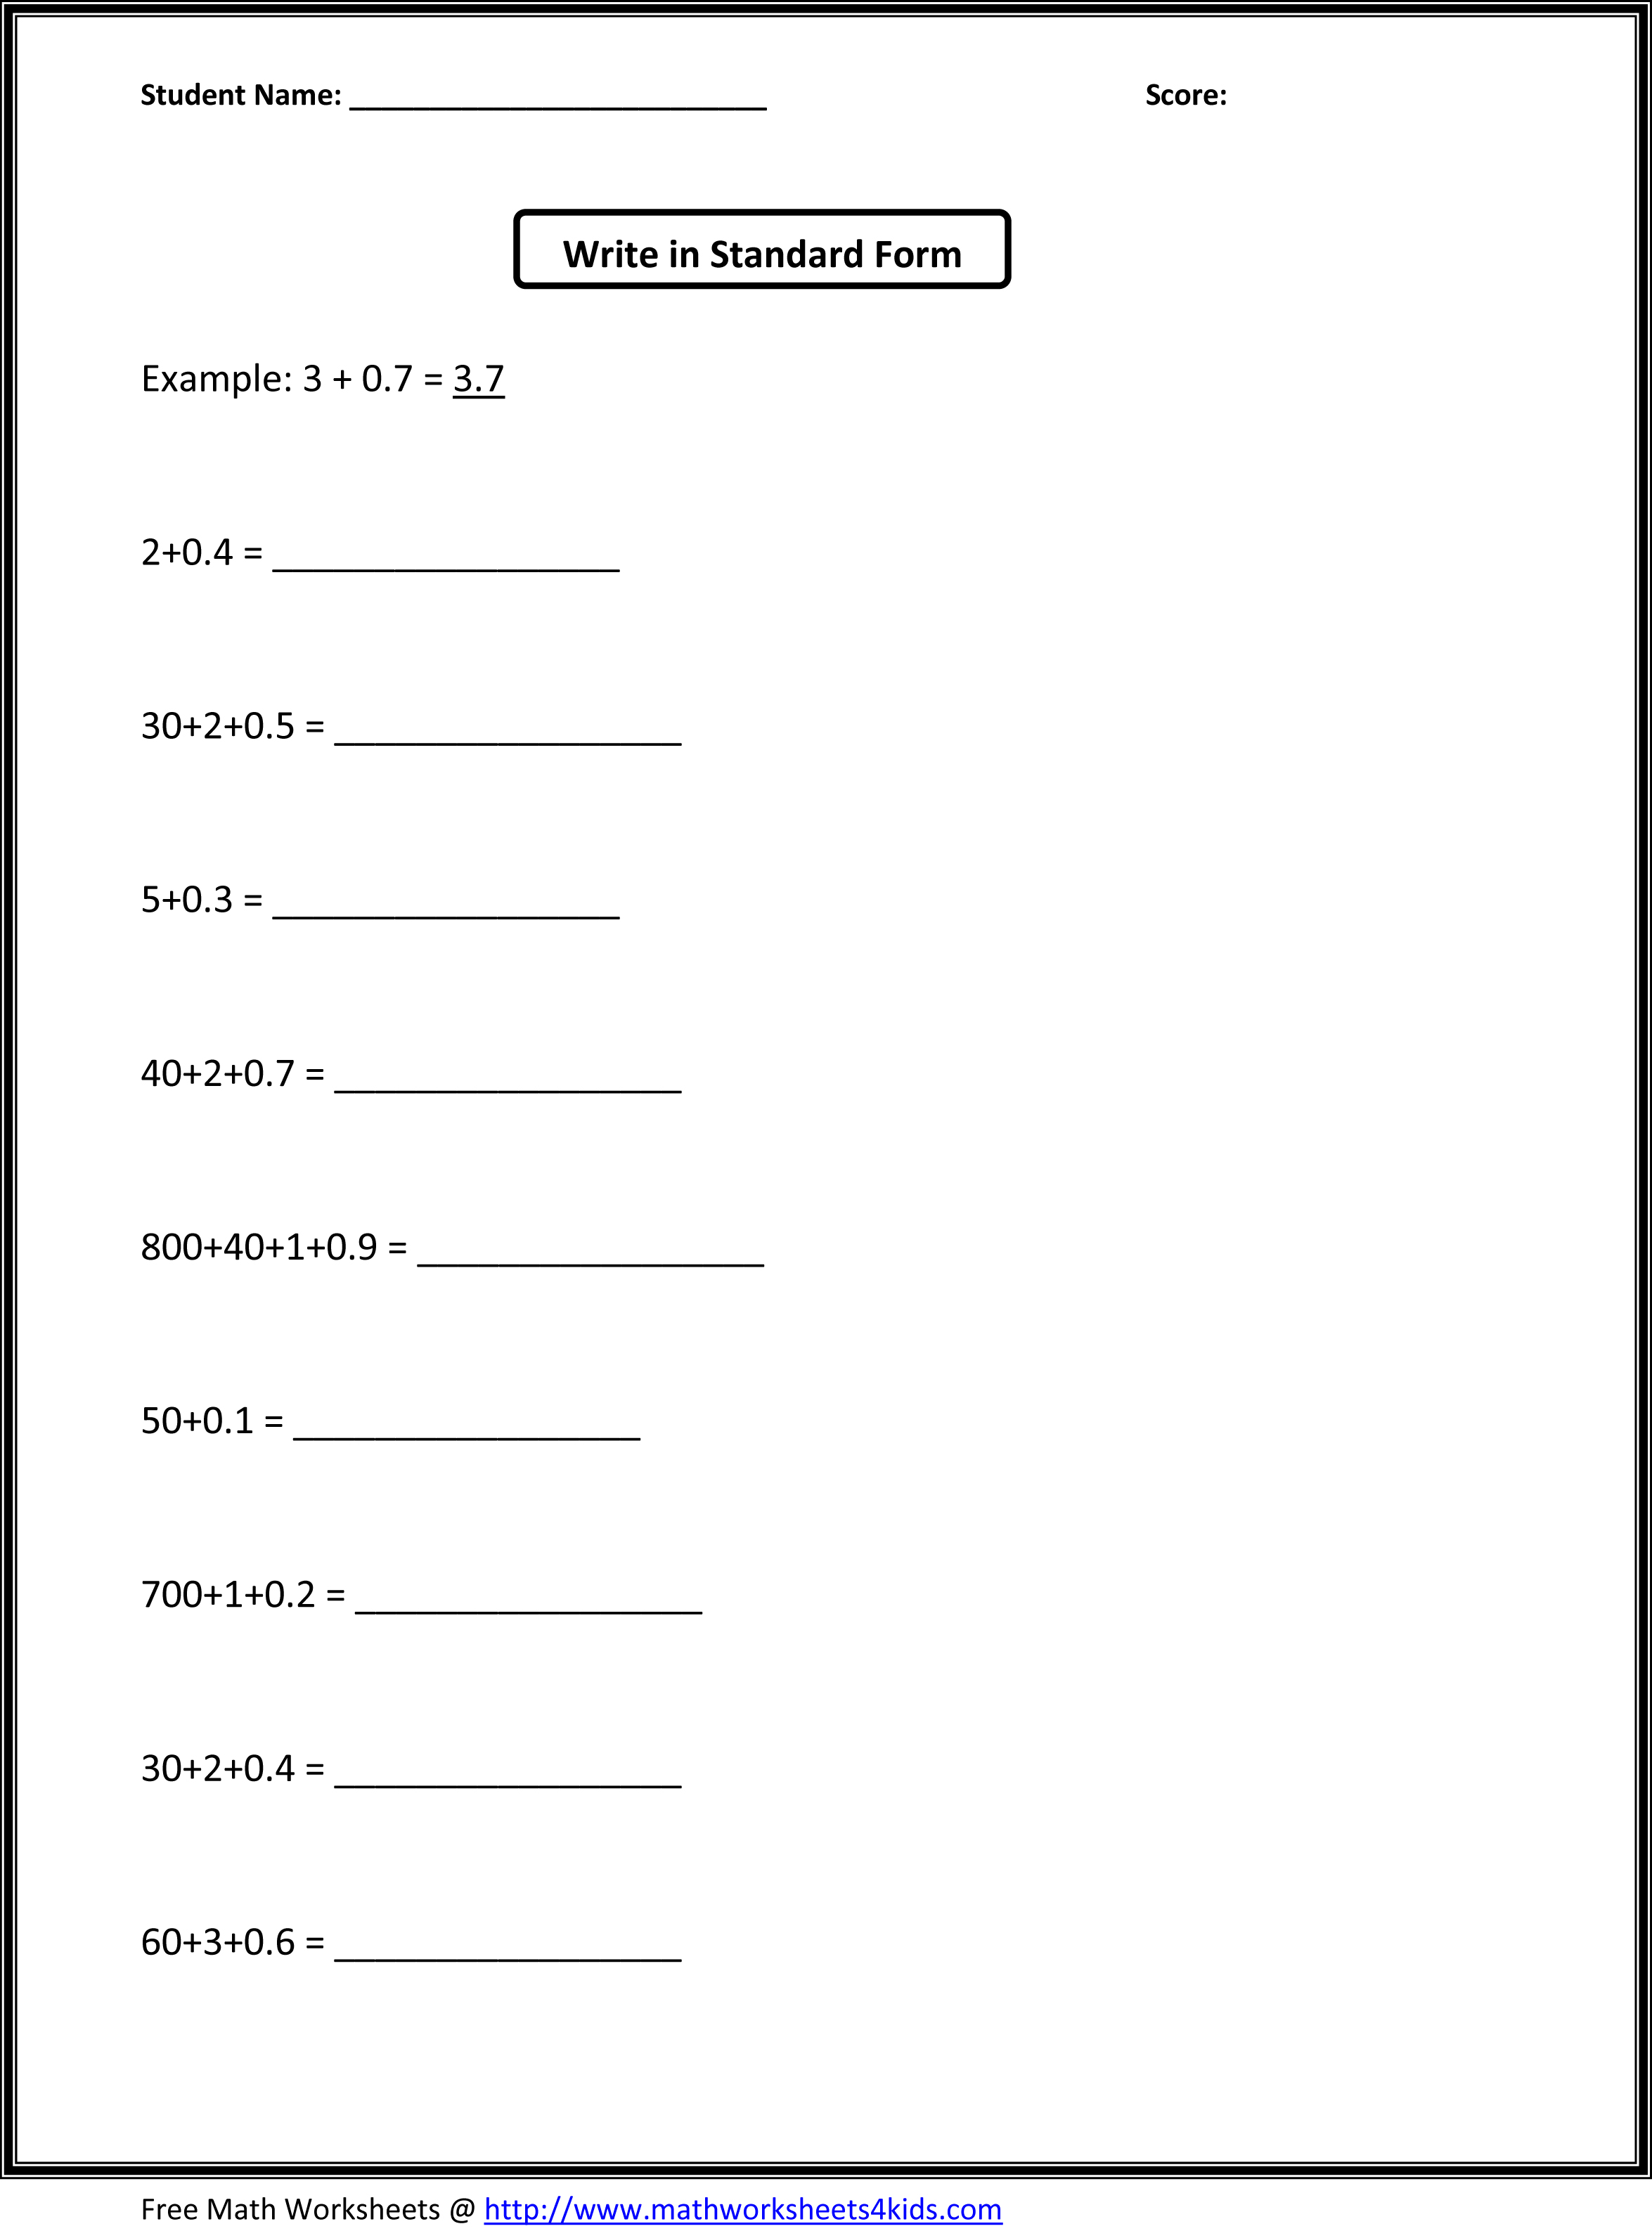 12 Best Images Of Basic High School Math Worksheets